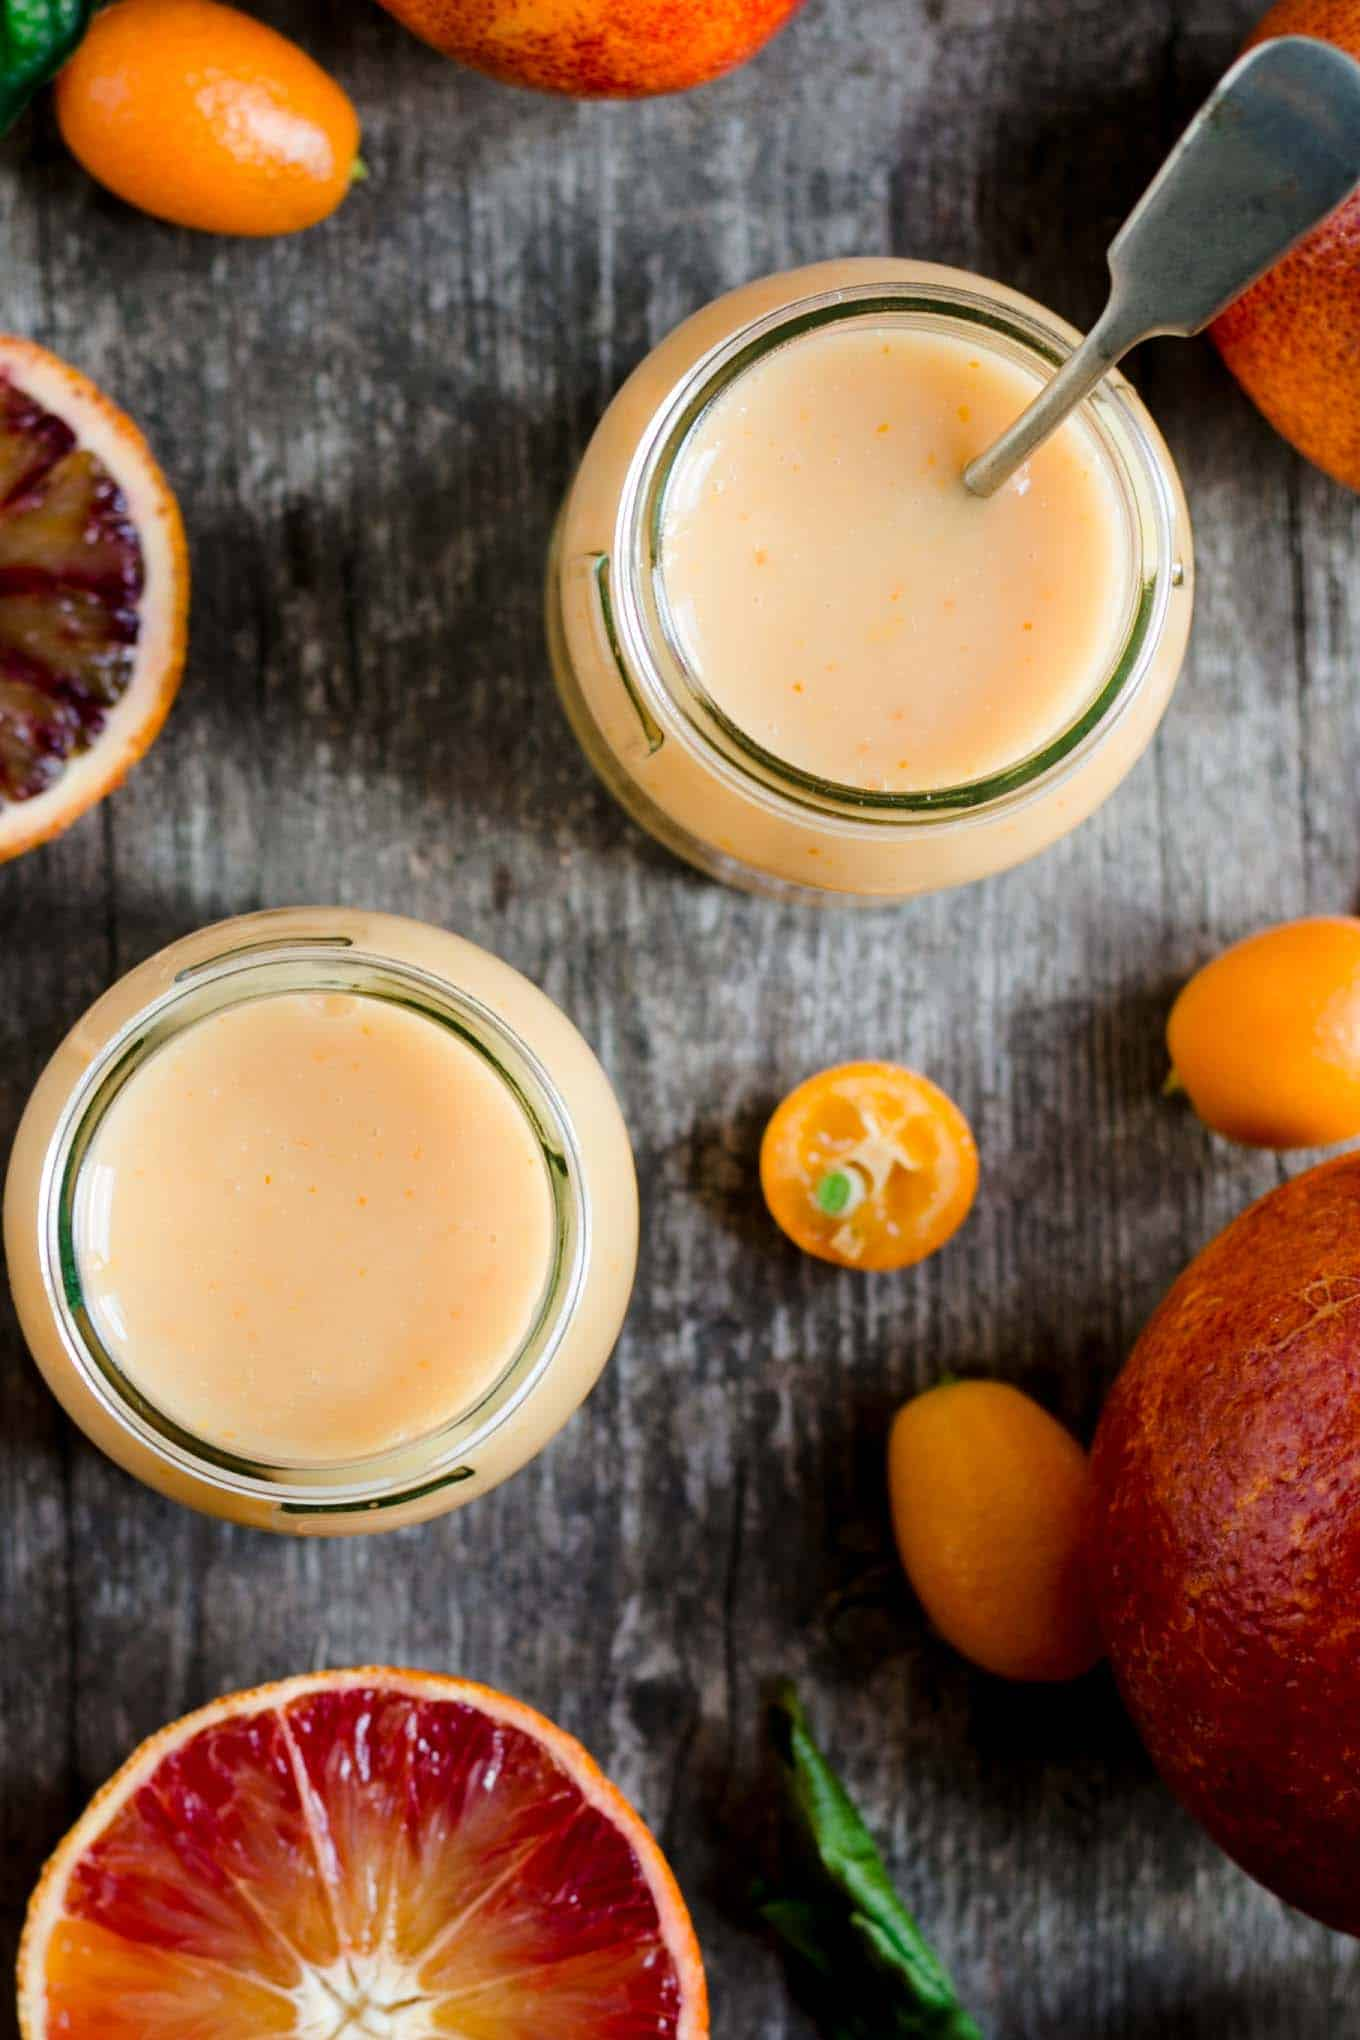 Vegan blood orange curd! Super simple recipe #vegan #dairyfree #curd | via @annabanana.co